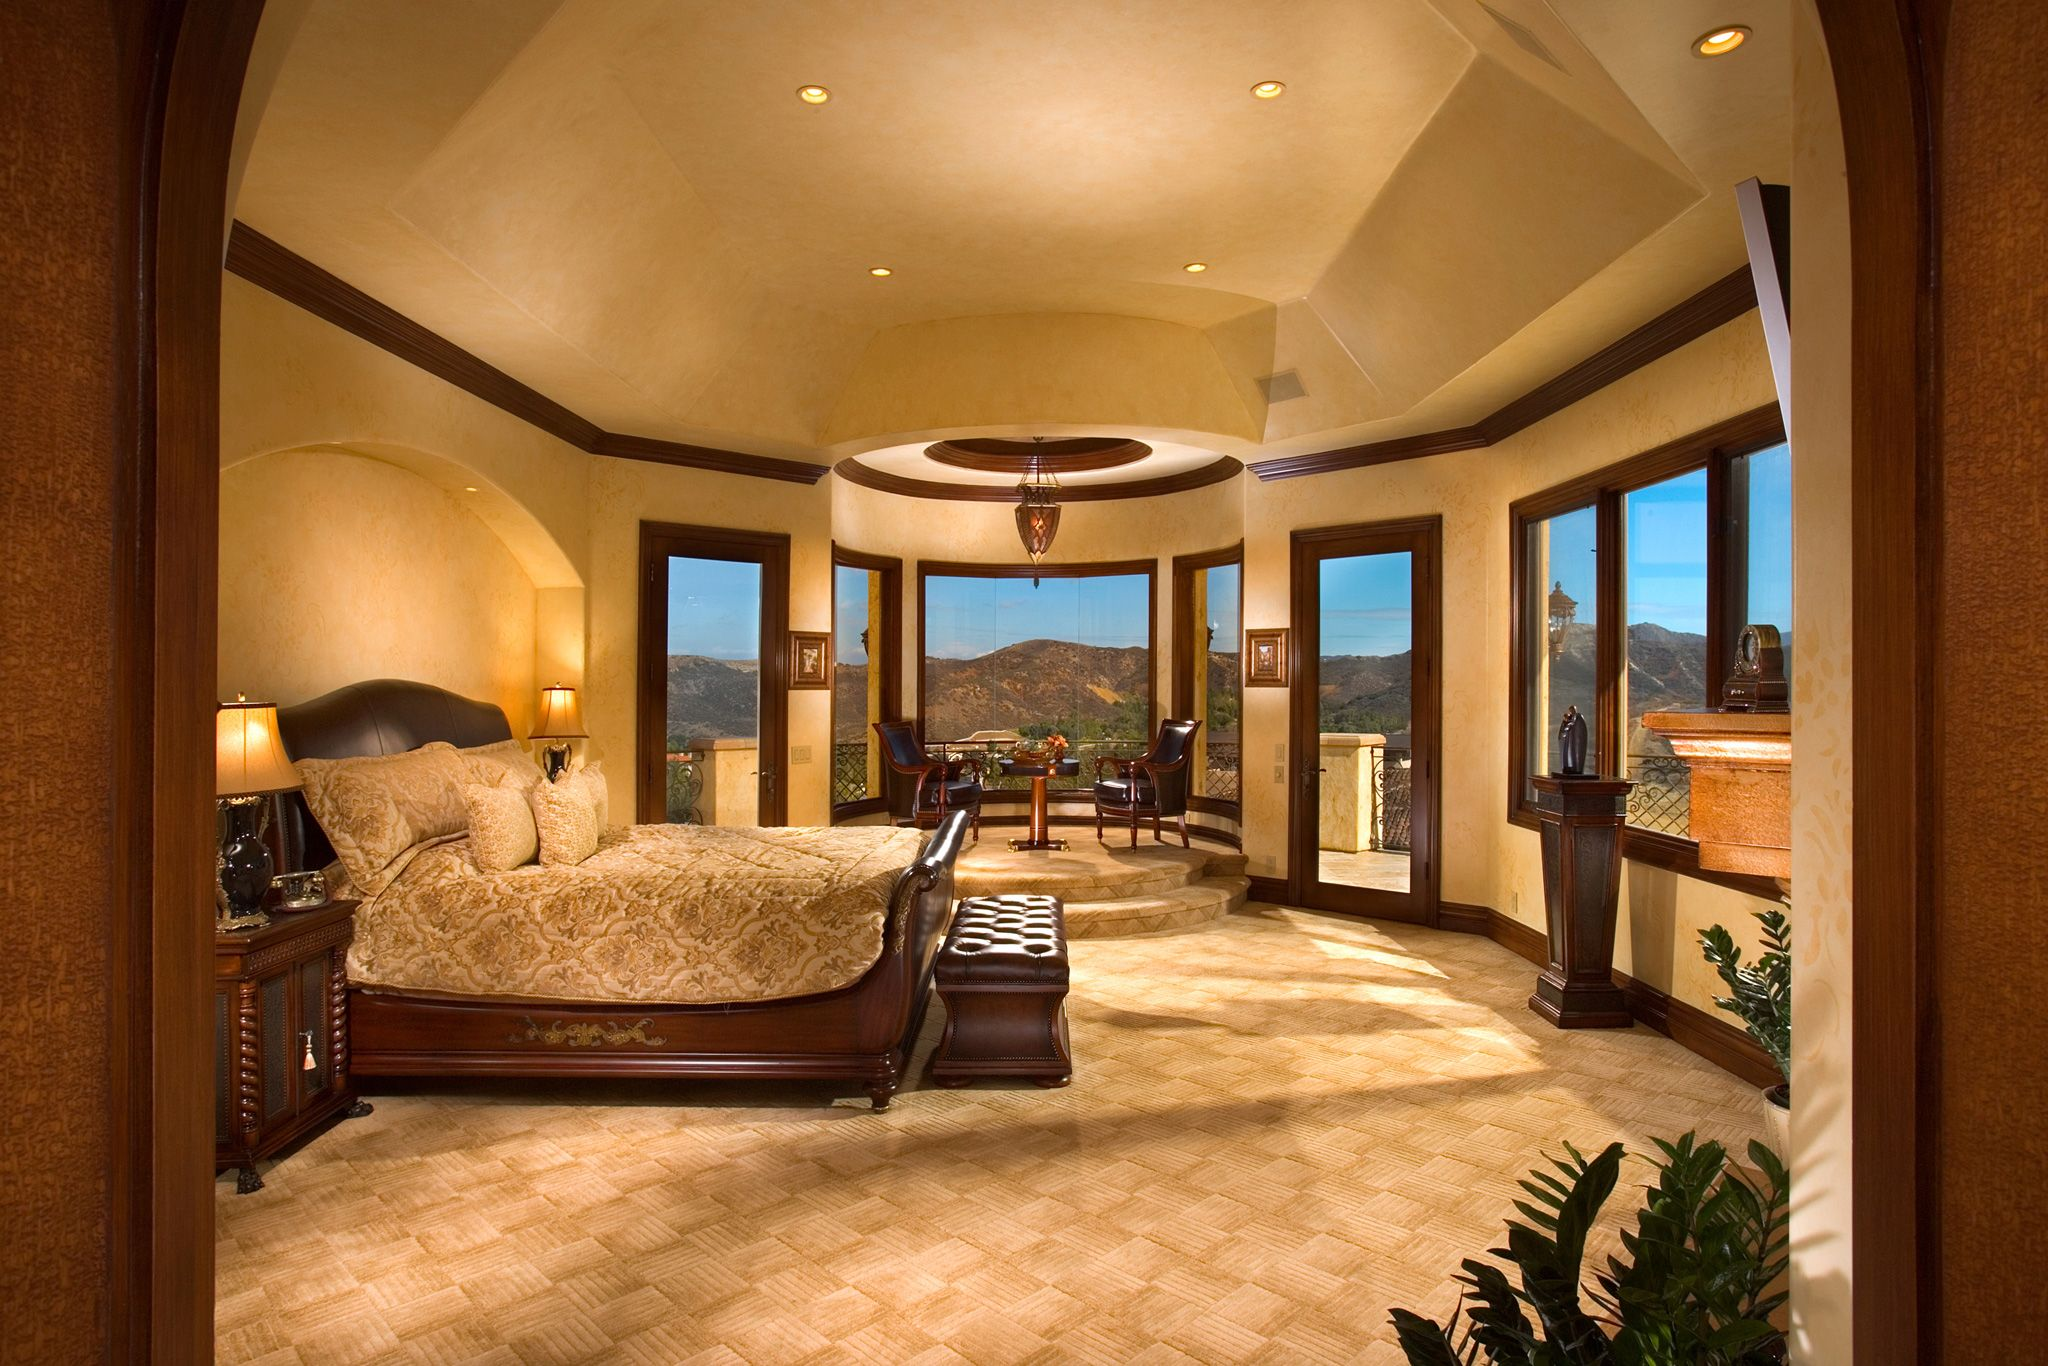 21 incredible master bedrooms design ideas luxury master Dream room design